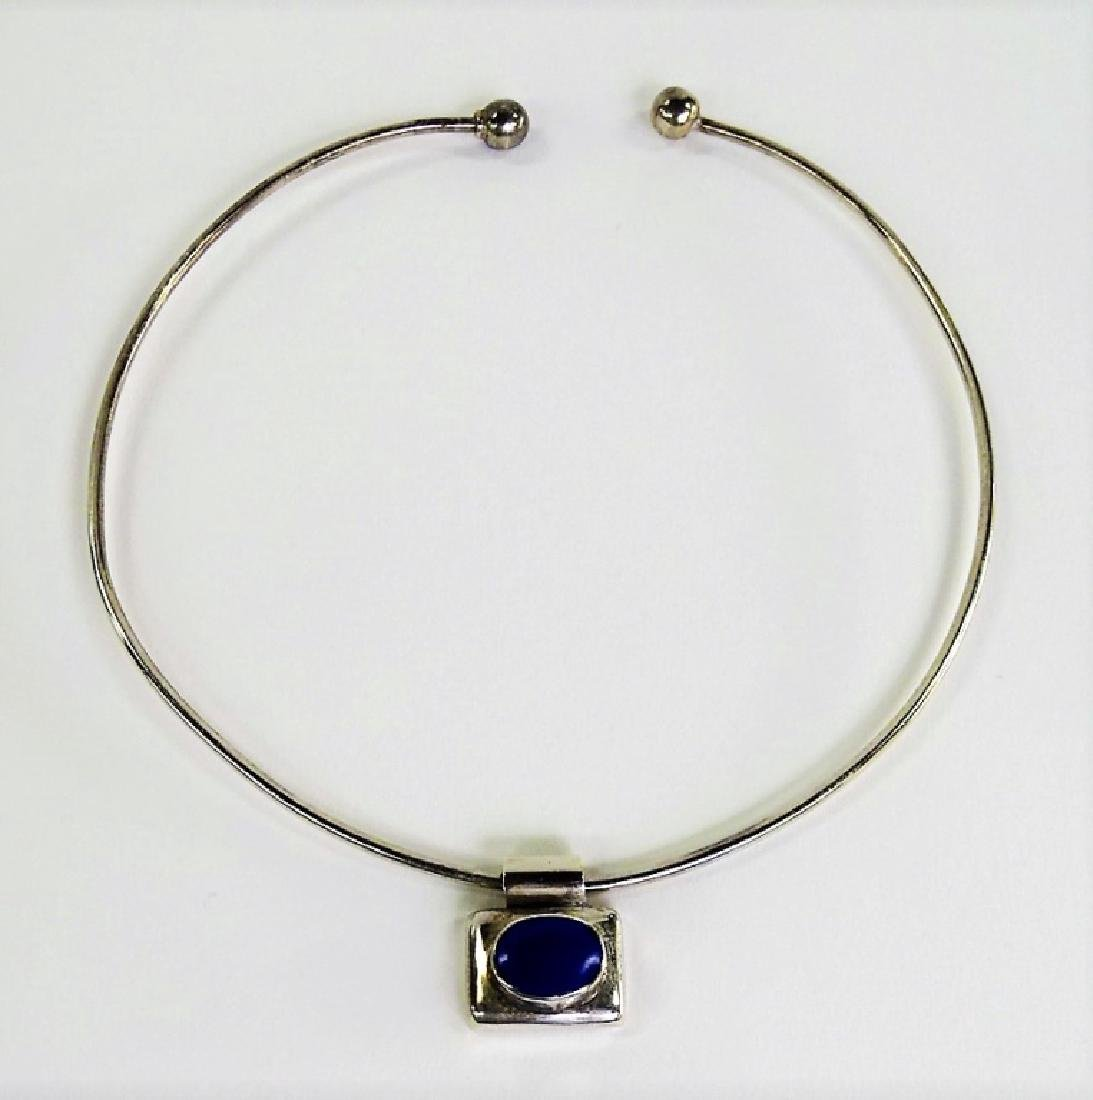 TAXCO MEXICO STERLING & LAPIS CHOKER NECKLACE